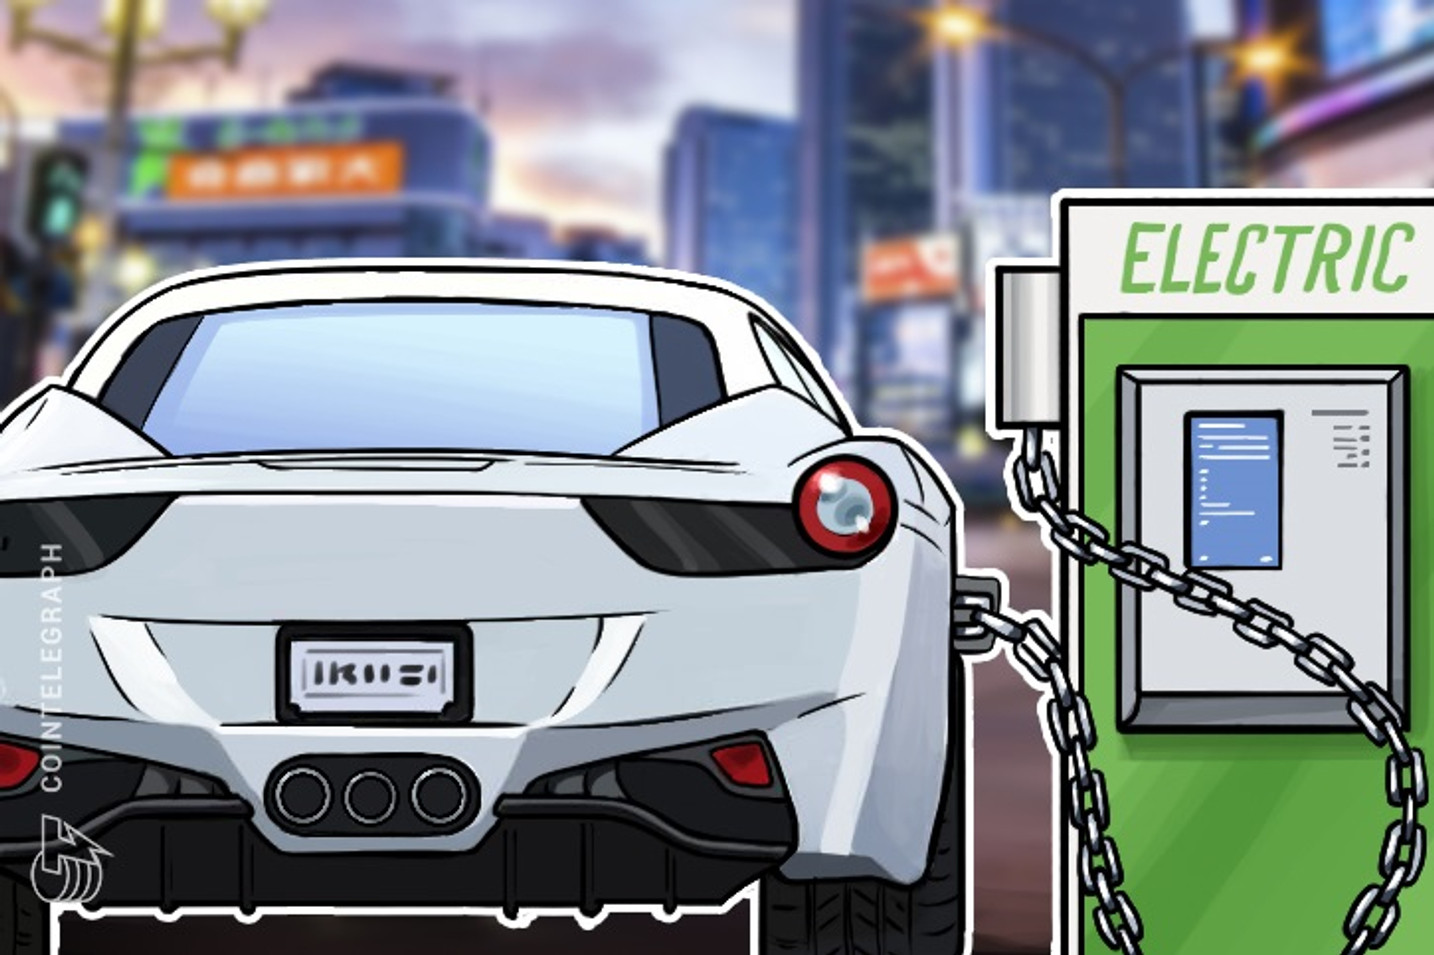 Japanese Electric Company Tests Bitcoin Lightning Network Payments For Car Charging